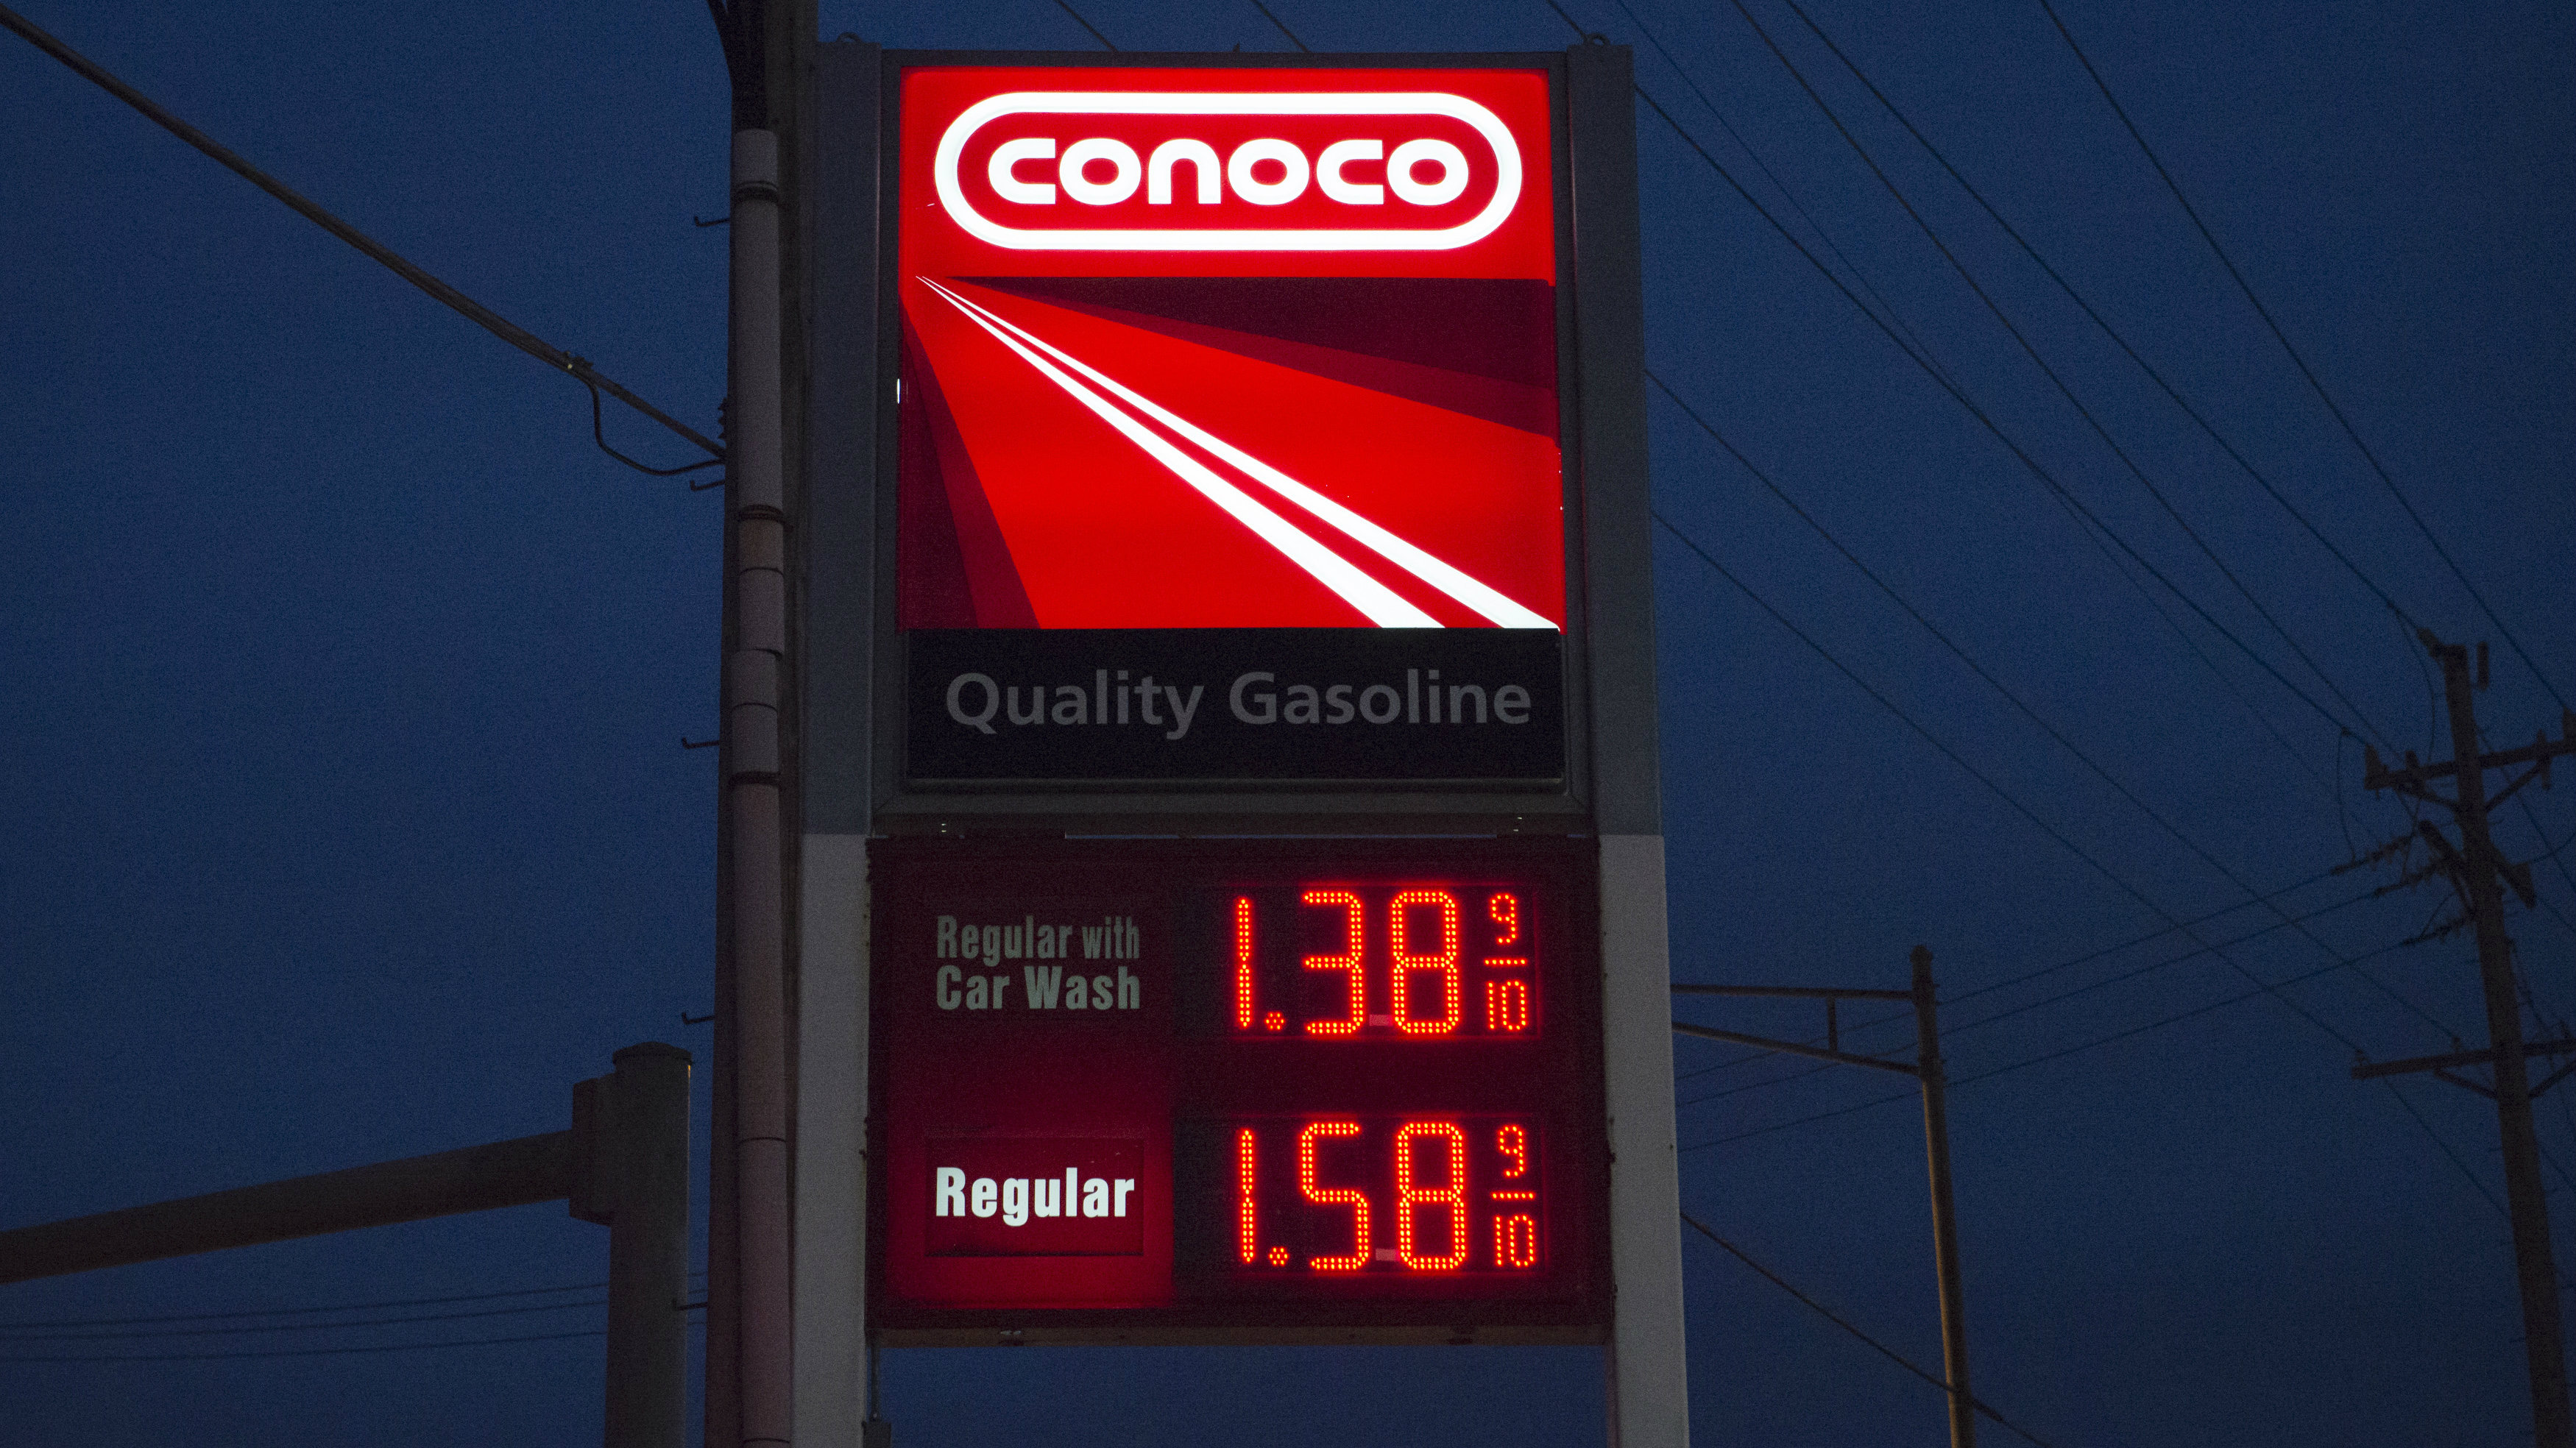 A Conoco gasoline station in St. Louis, Missouri January 14, 2015, as gas prices dropped across the country over the last three months.